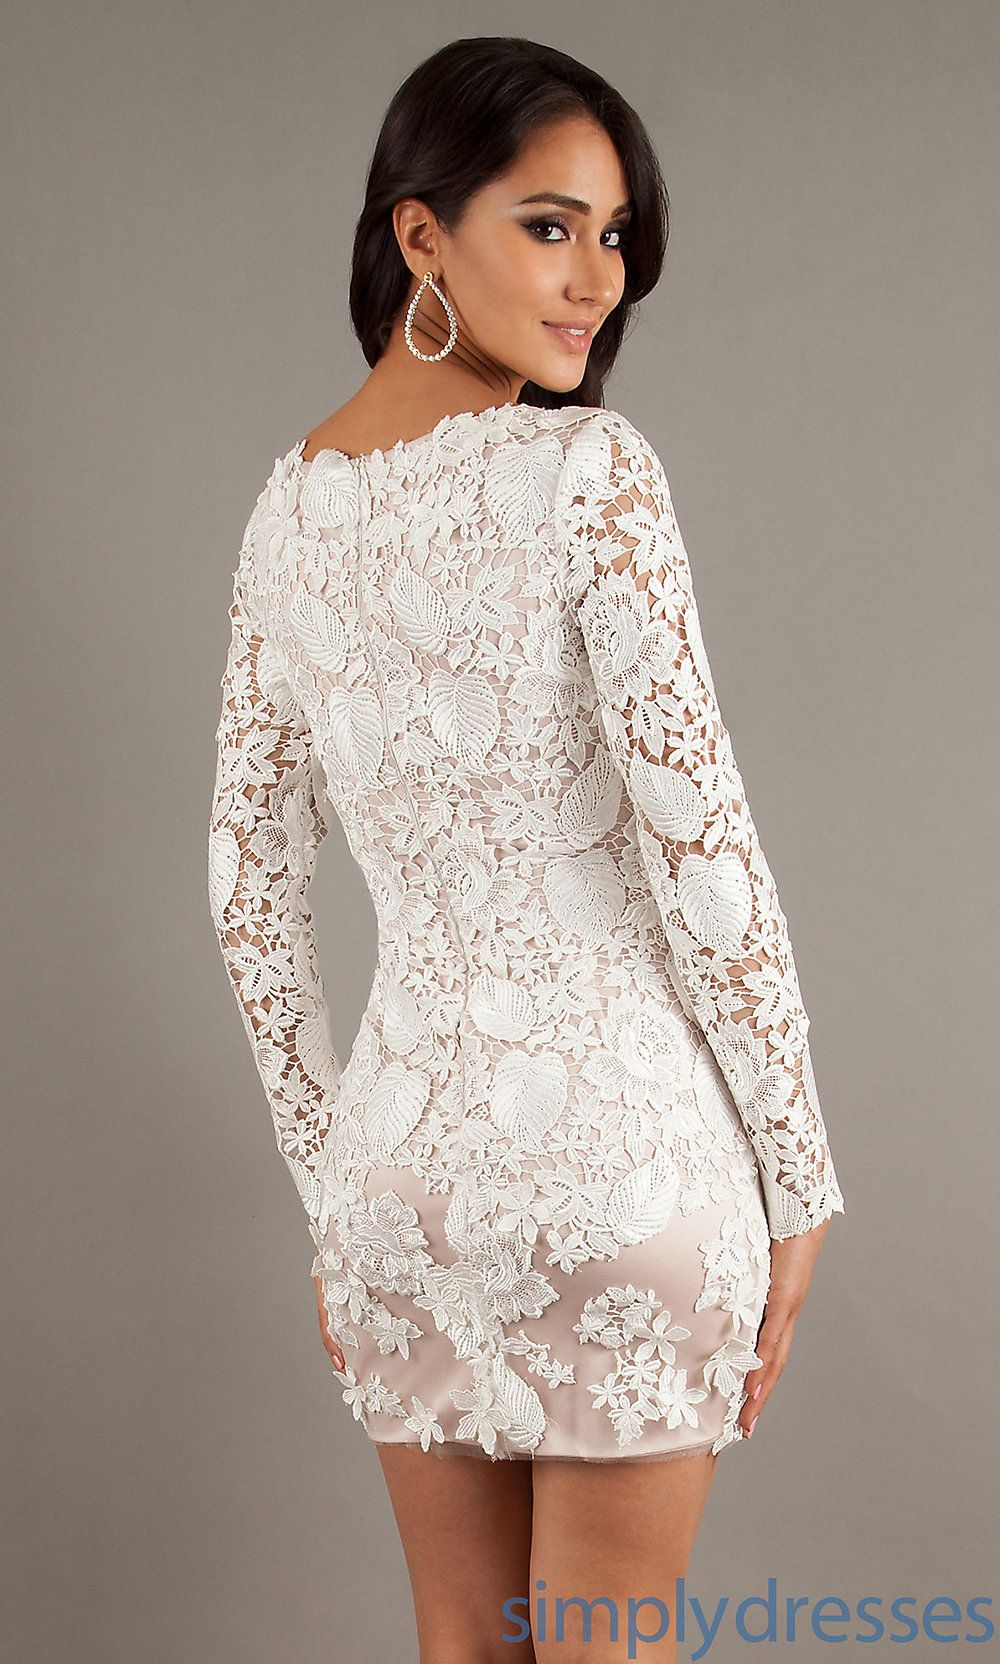 Short White Lace Dress With Long Sleeves